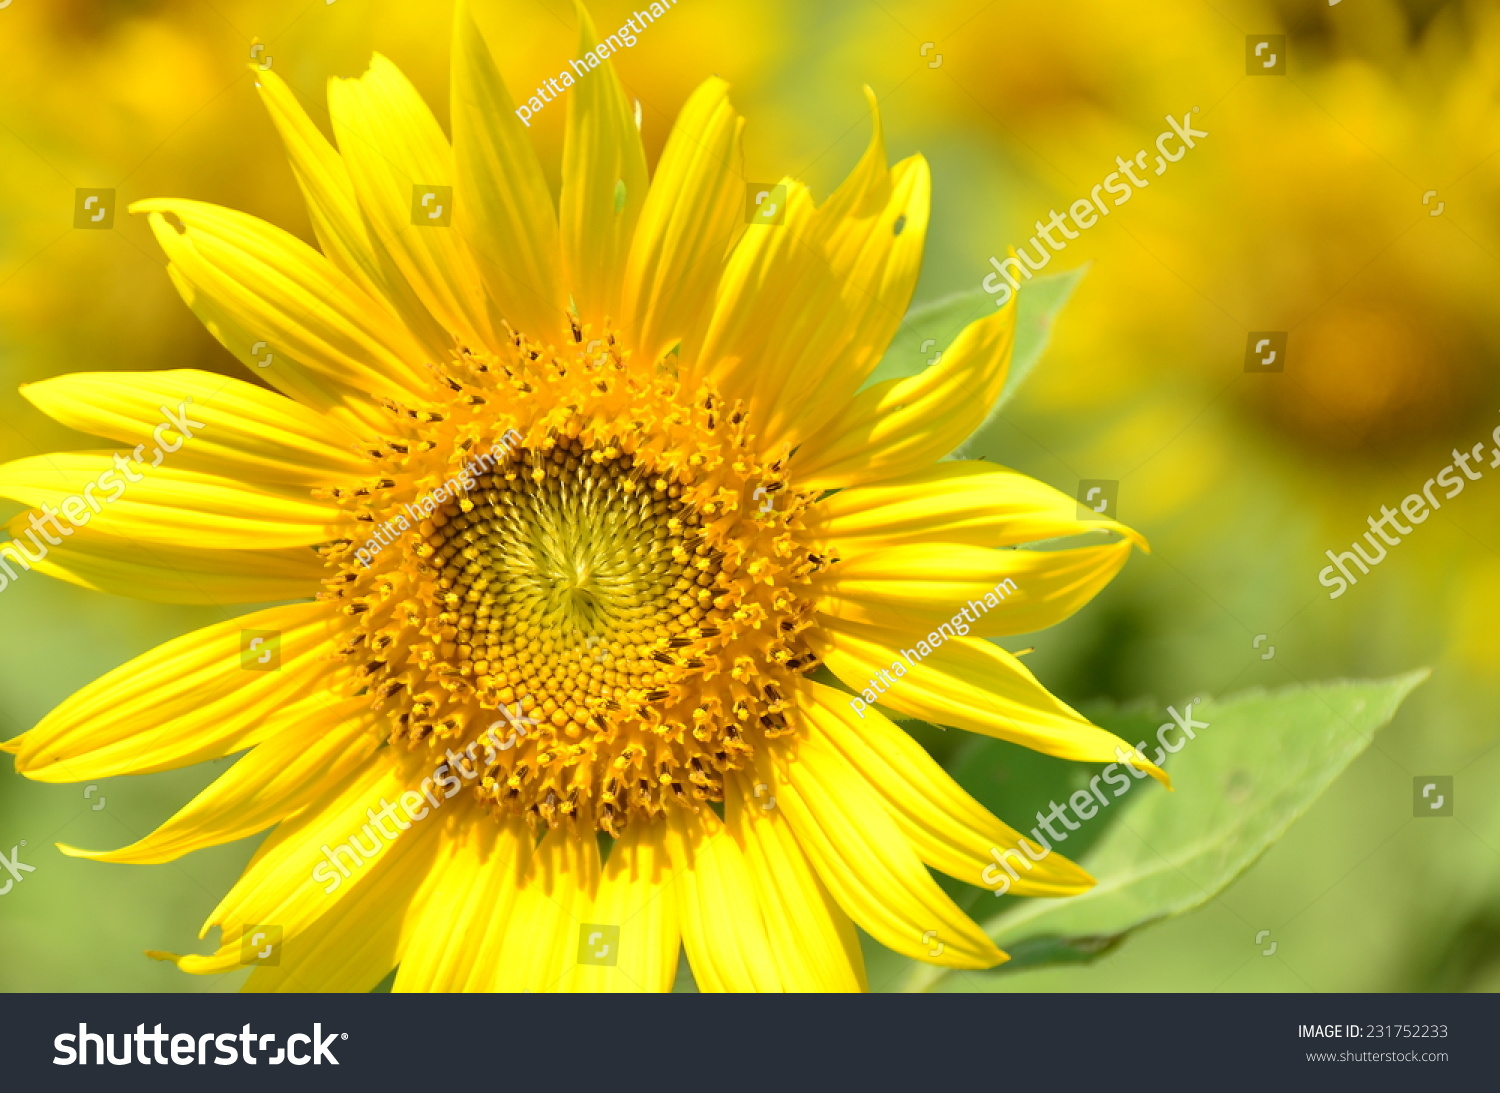 sunflowers green background yellow nature wallpaper | ez canvas